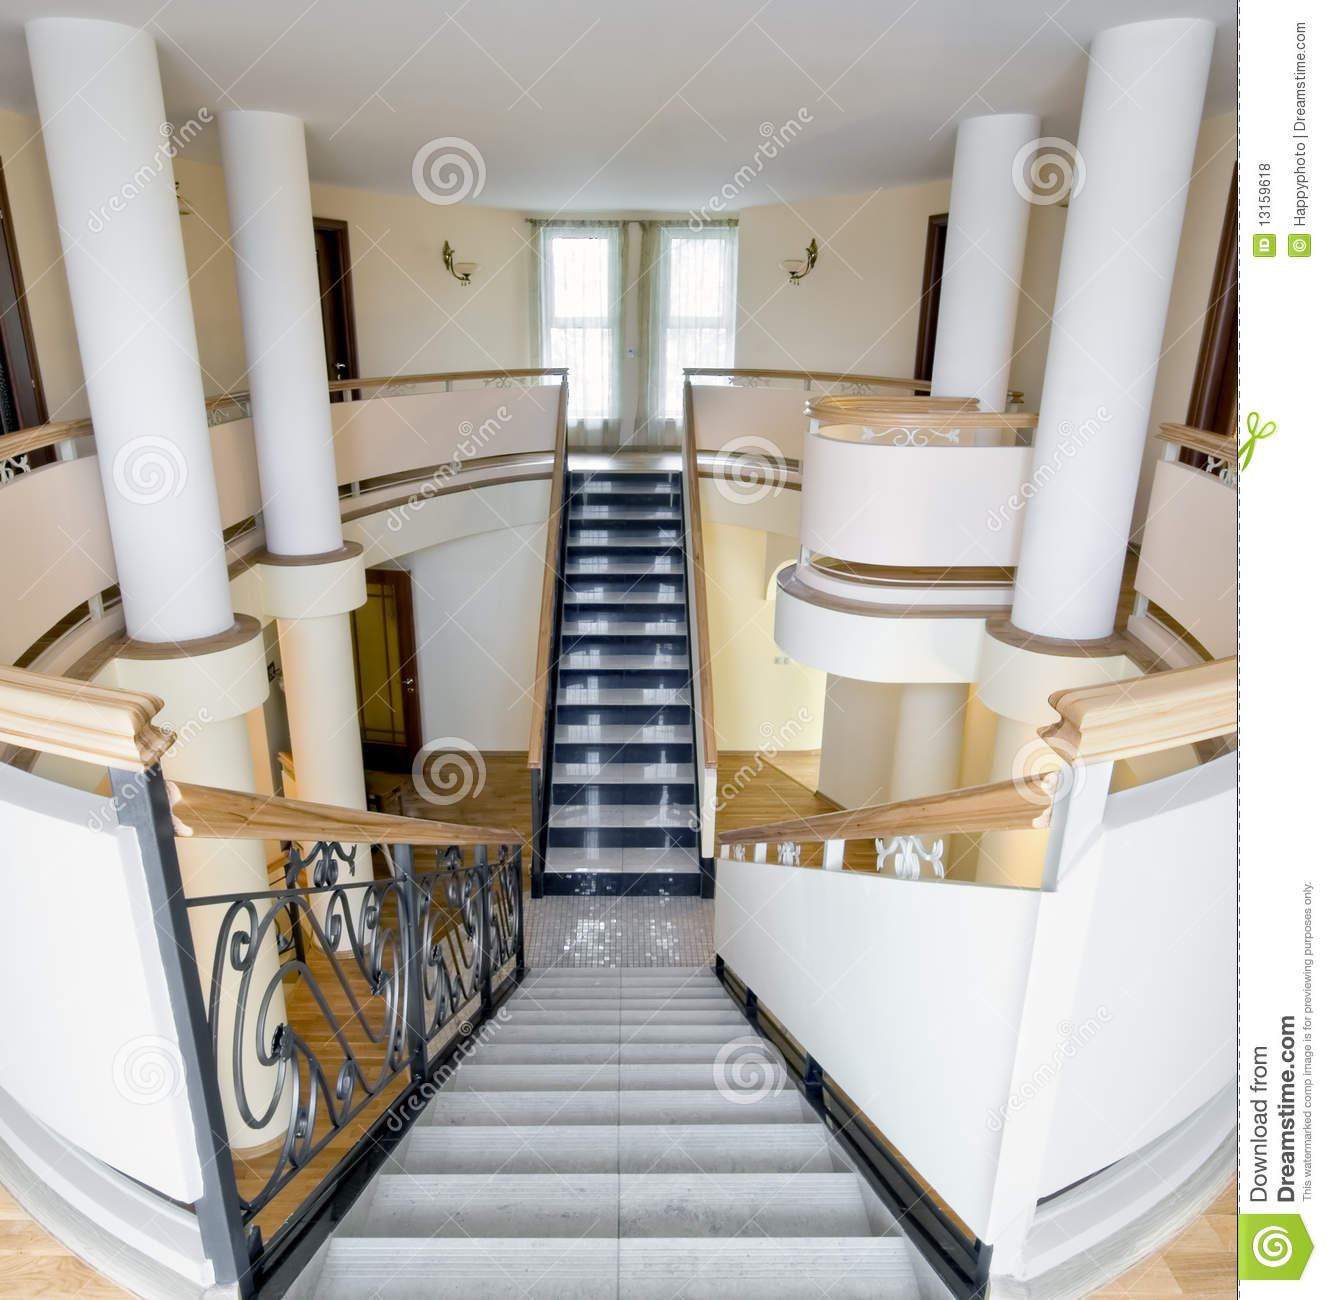 Mansion Interior With Staircase And Balcony Royalty Free